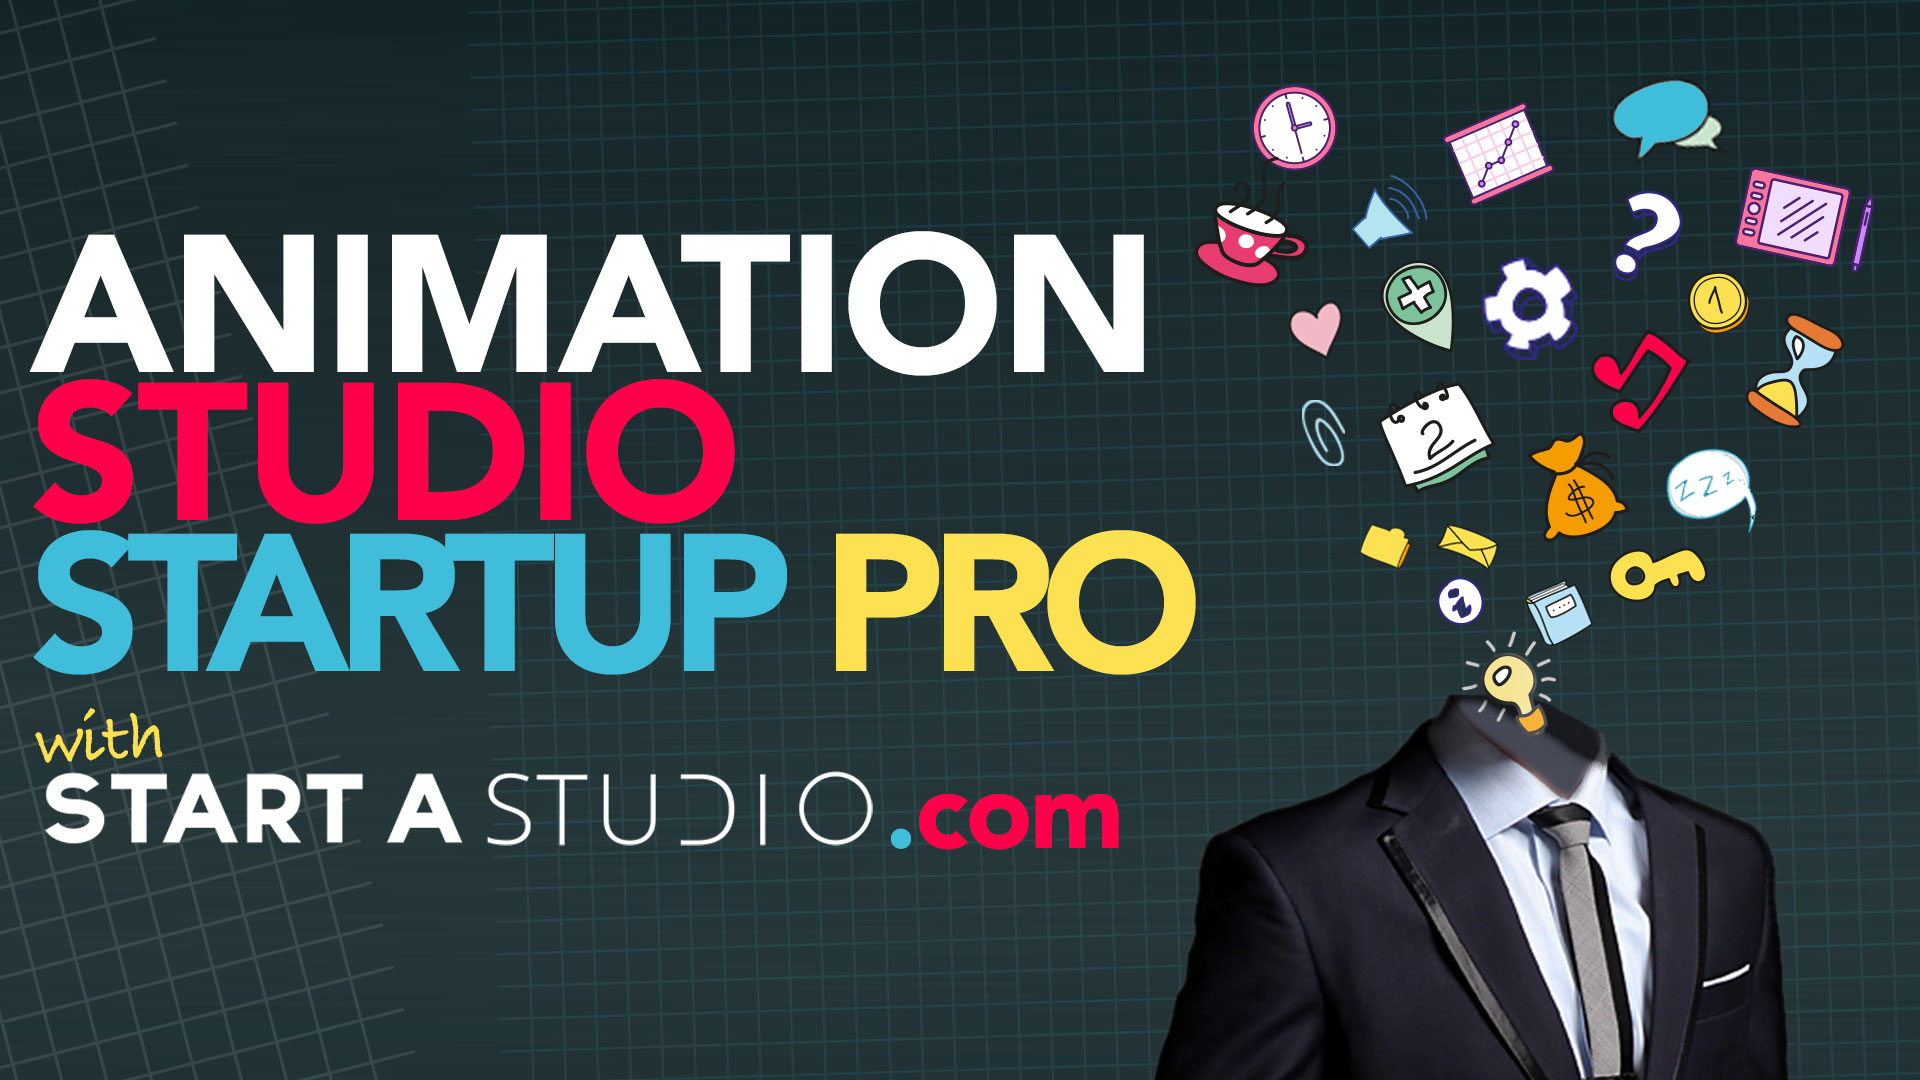 Startup Animation studio course